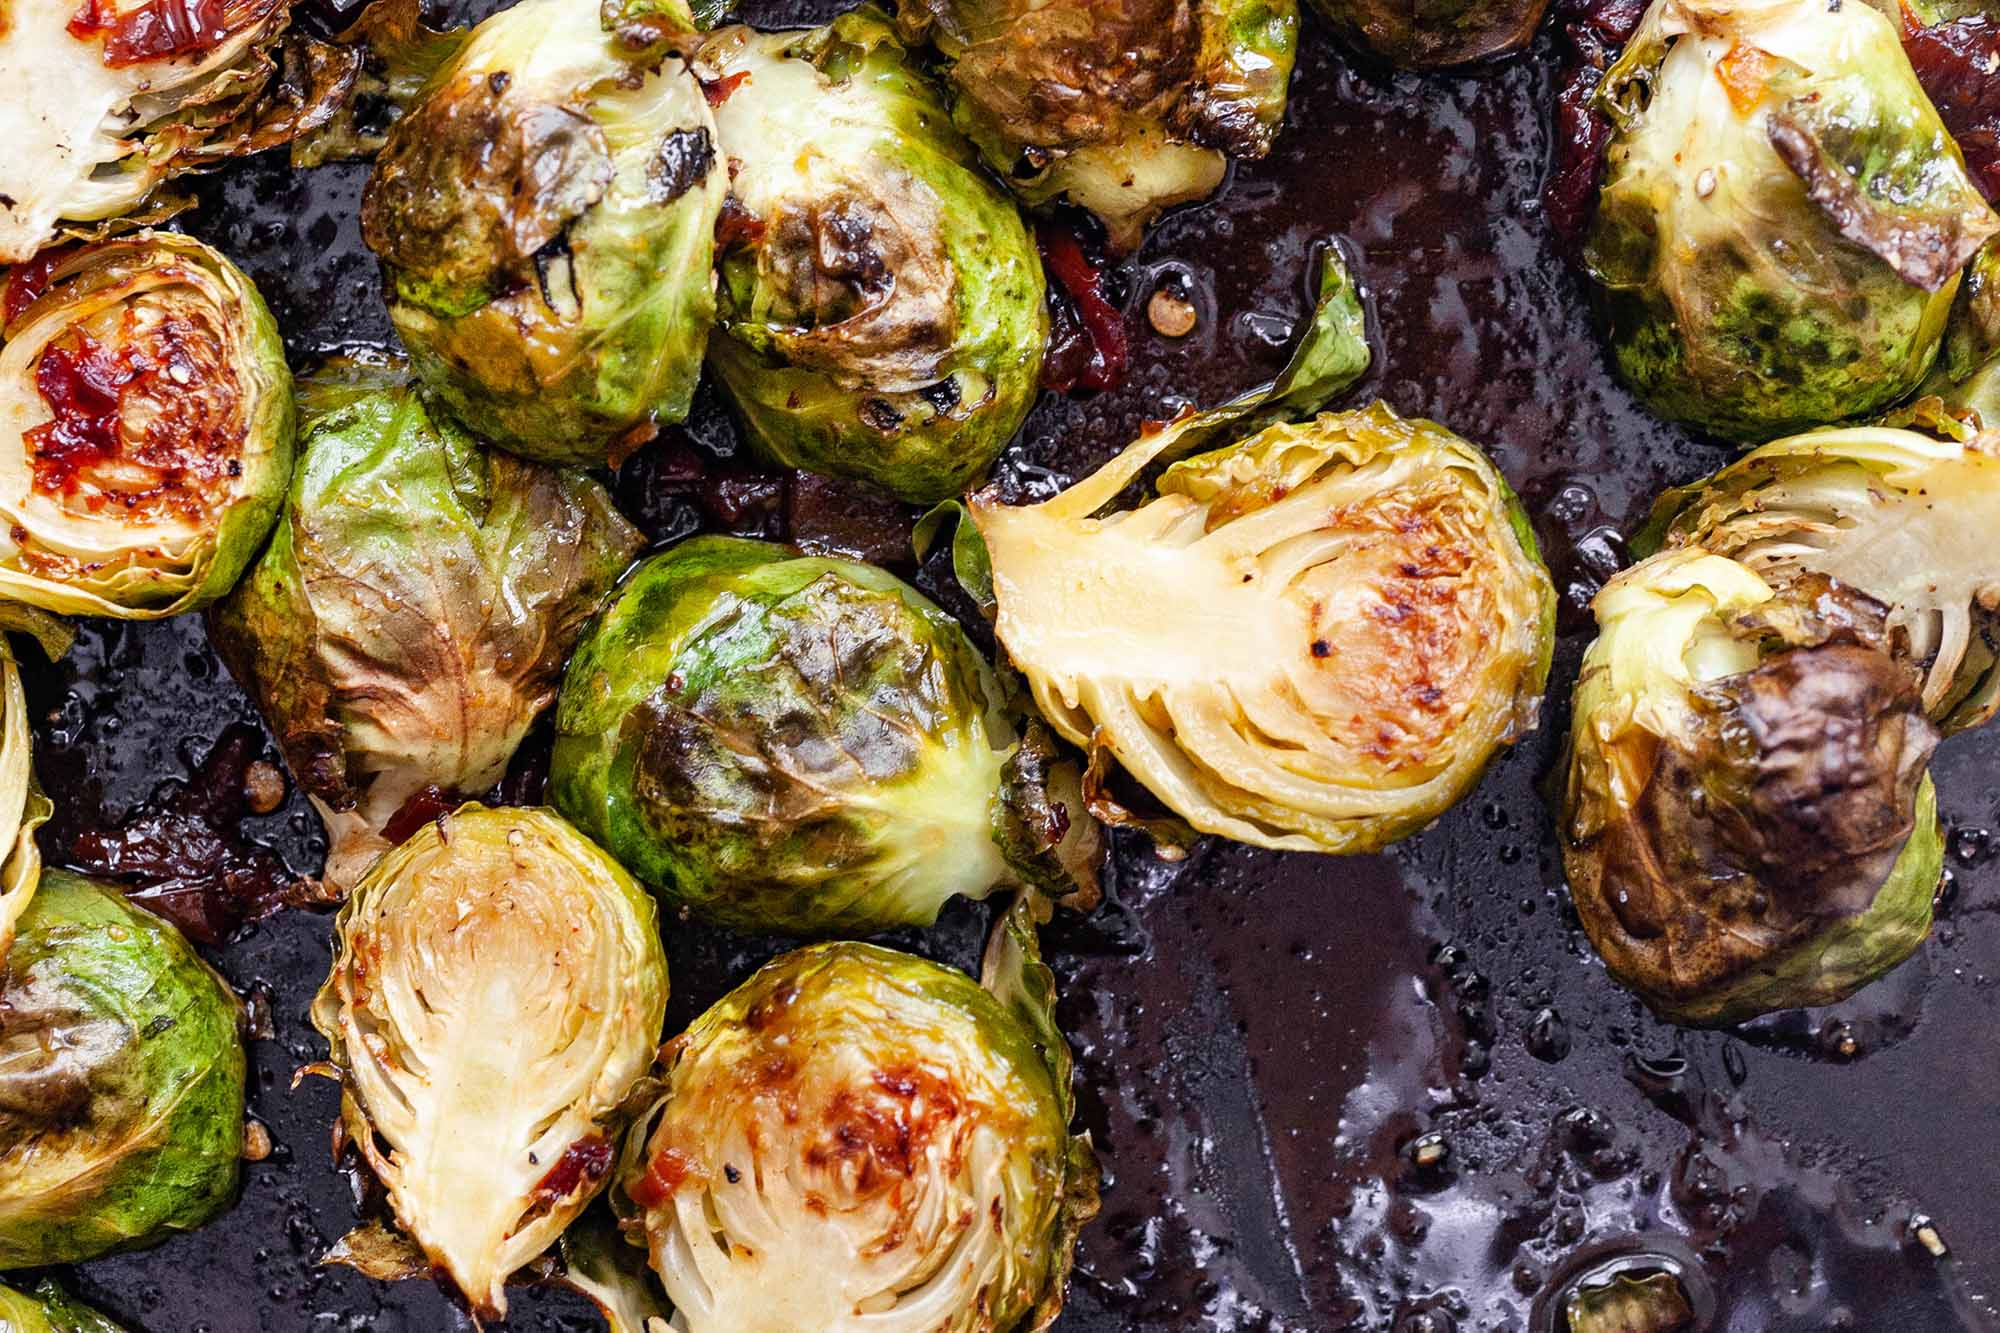 Roasted Brussels Sprouts with Chipotle